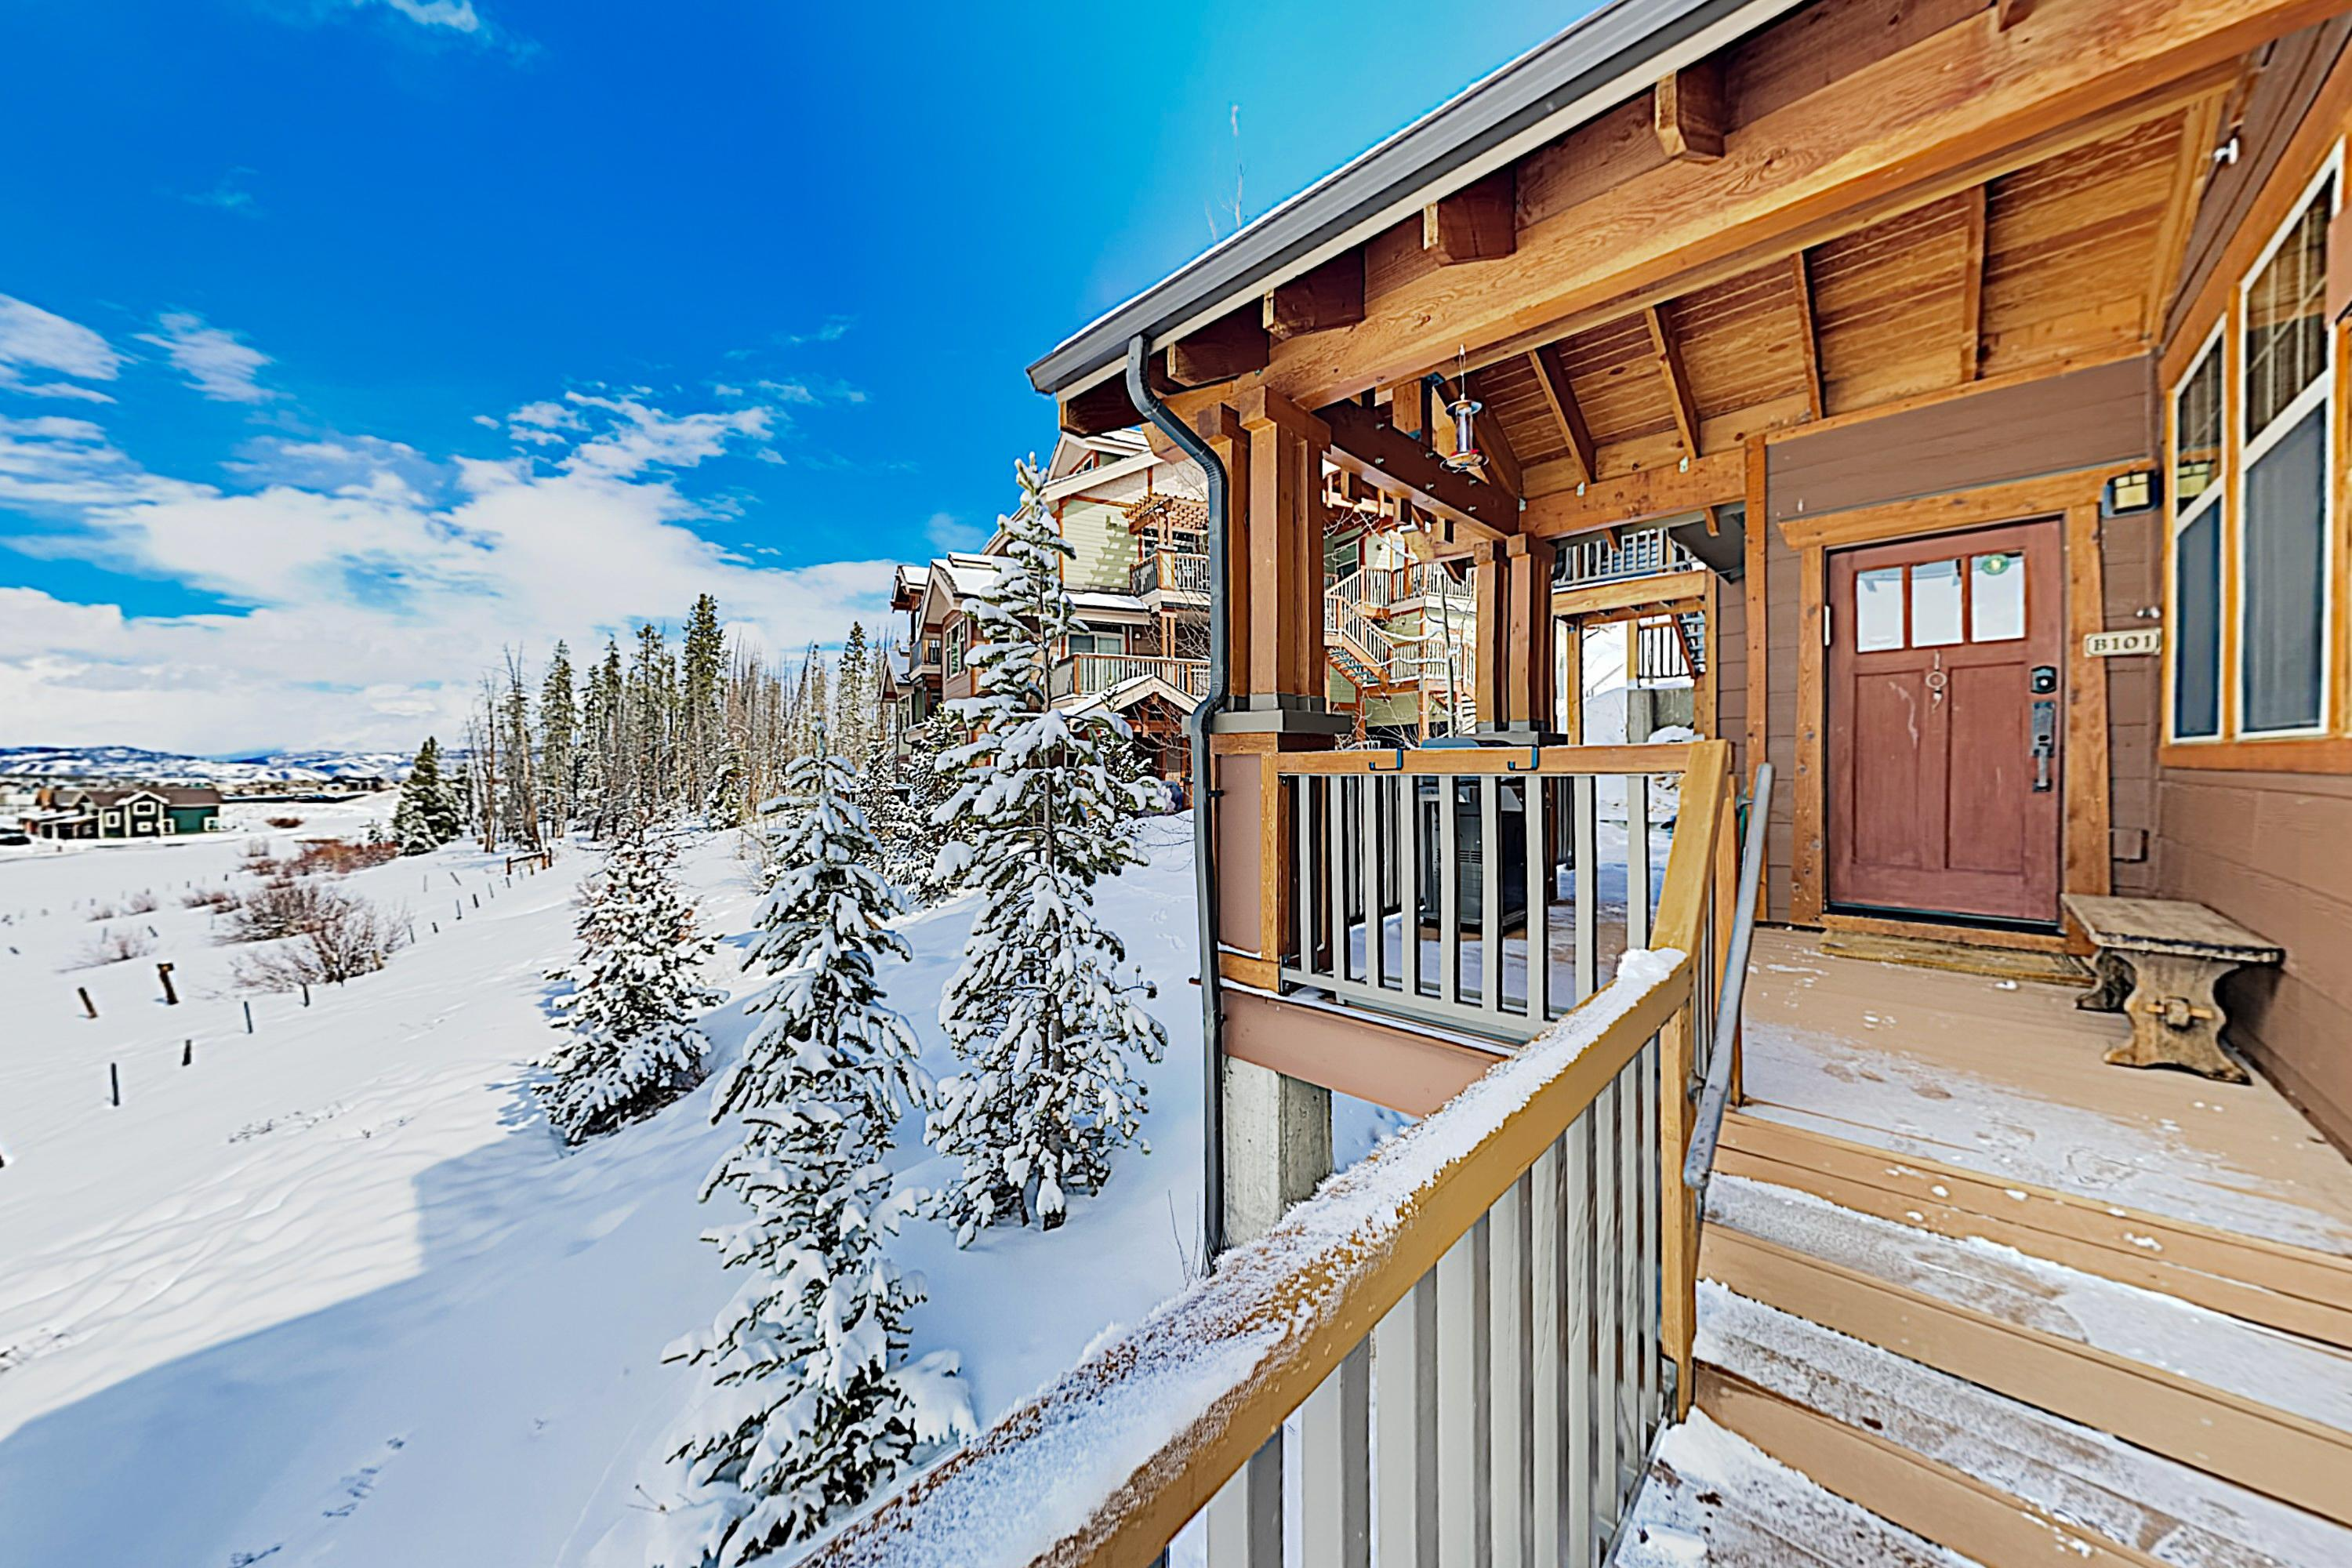 Property Image 1 - Relaxed Mountain View Condo with Hot Tub; Near Skiing & Downtown